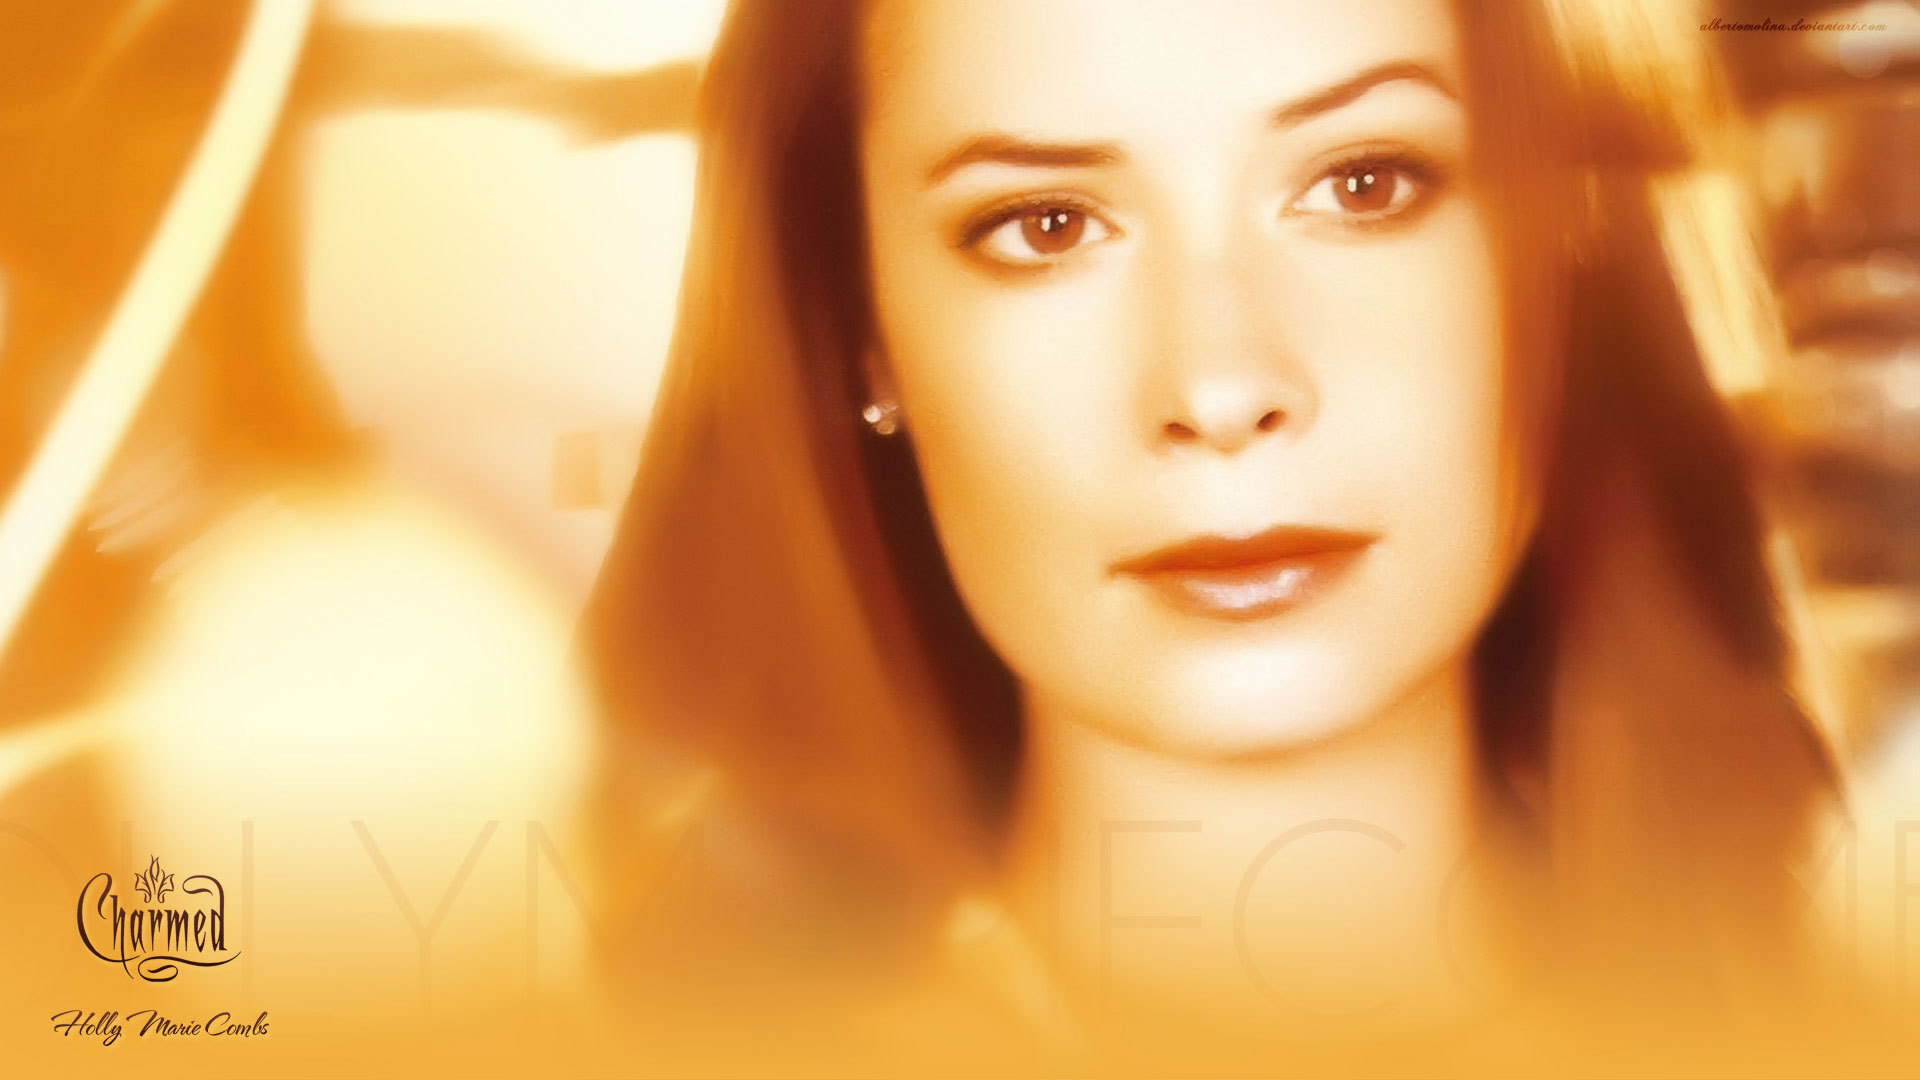 Charmed Wallpapers Widescreen3